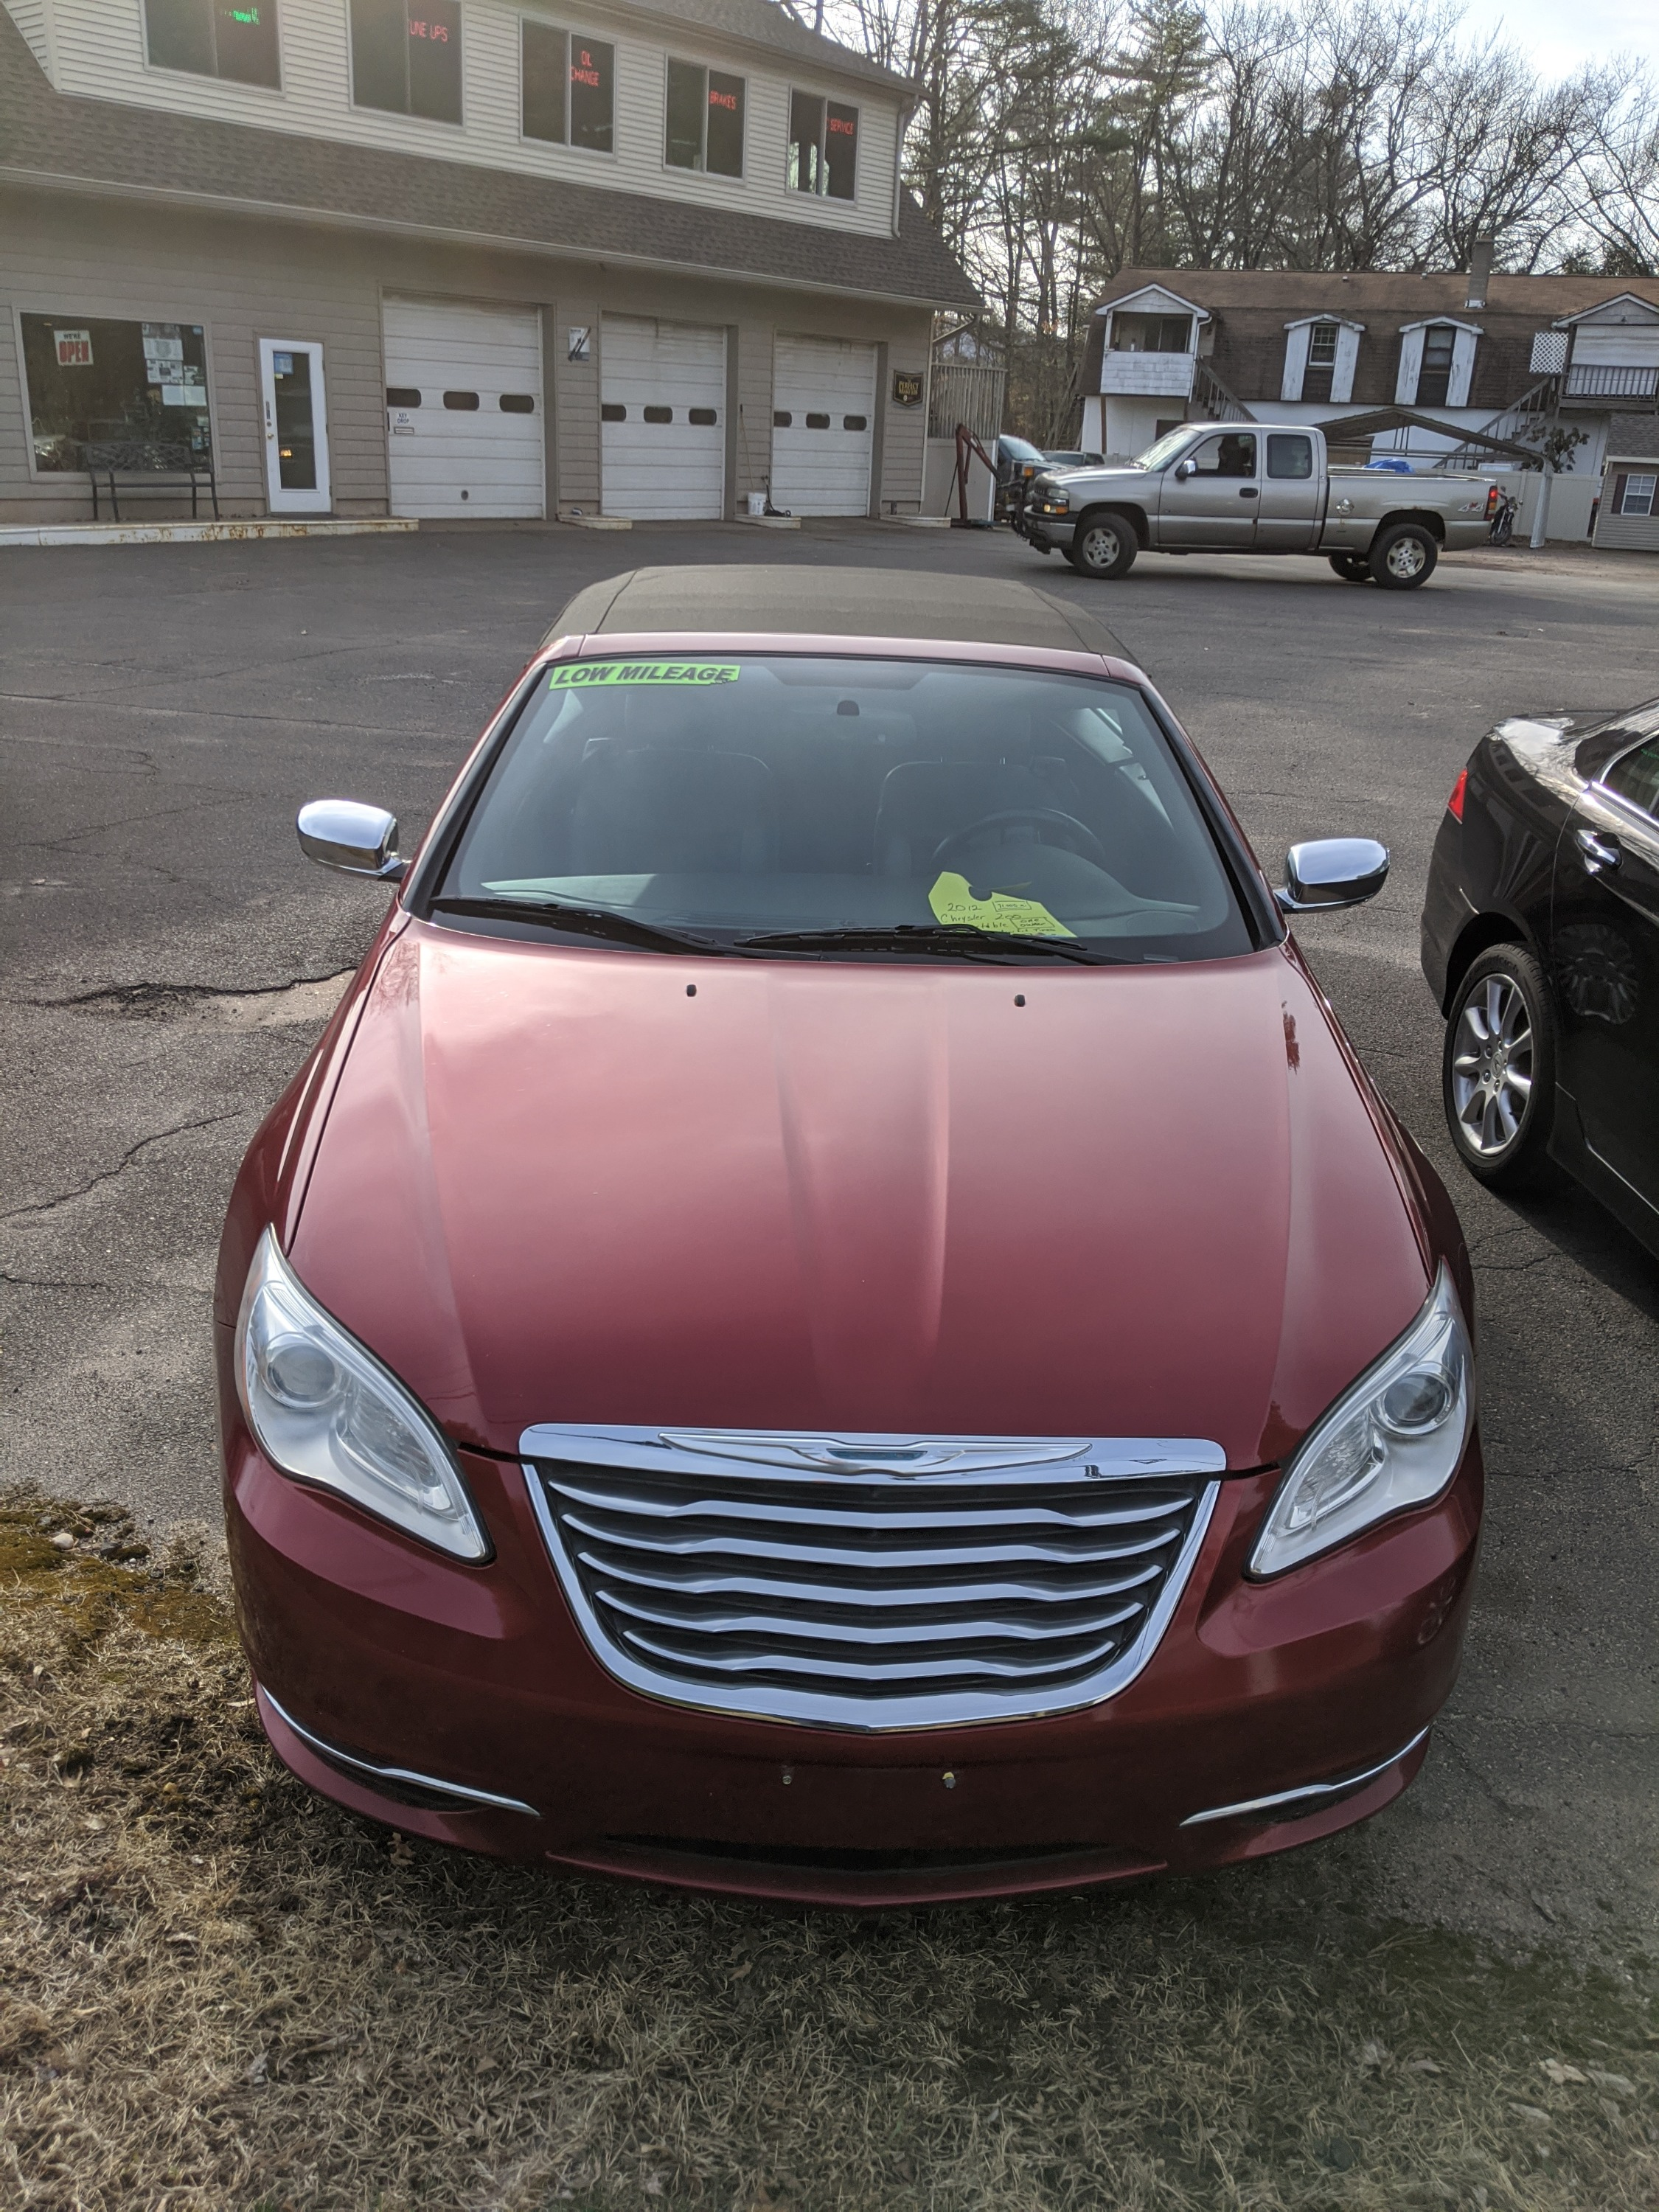 2012 Chrysler 200 with 72,500 miles